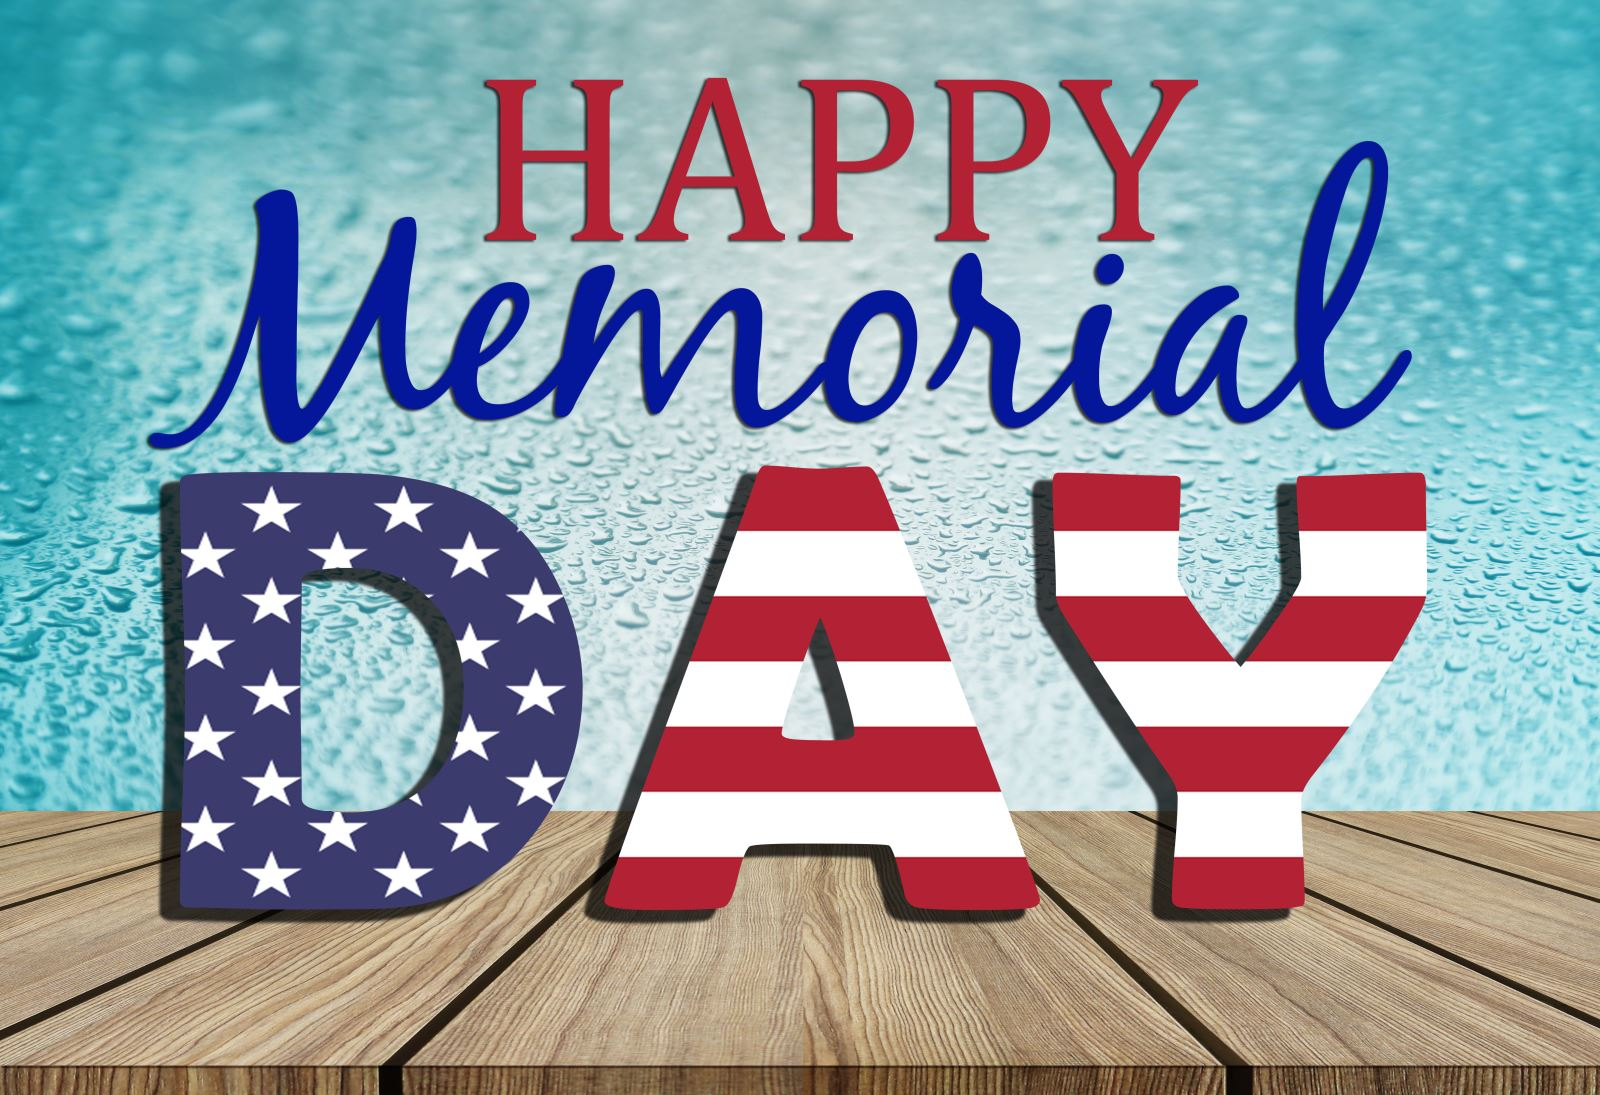 Happy Memorial Day Wallpapers posted by John Johnson